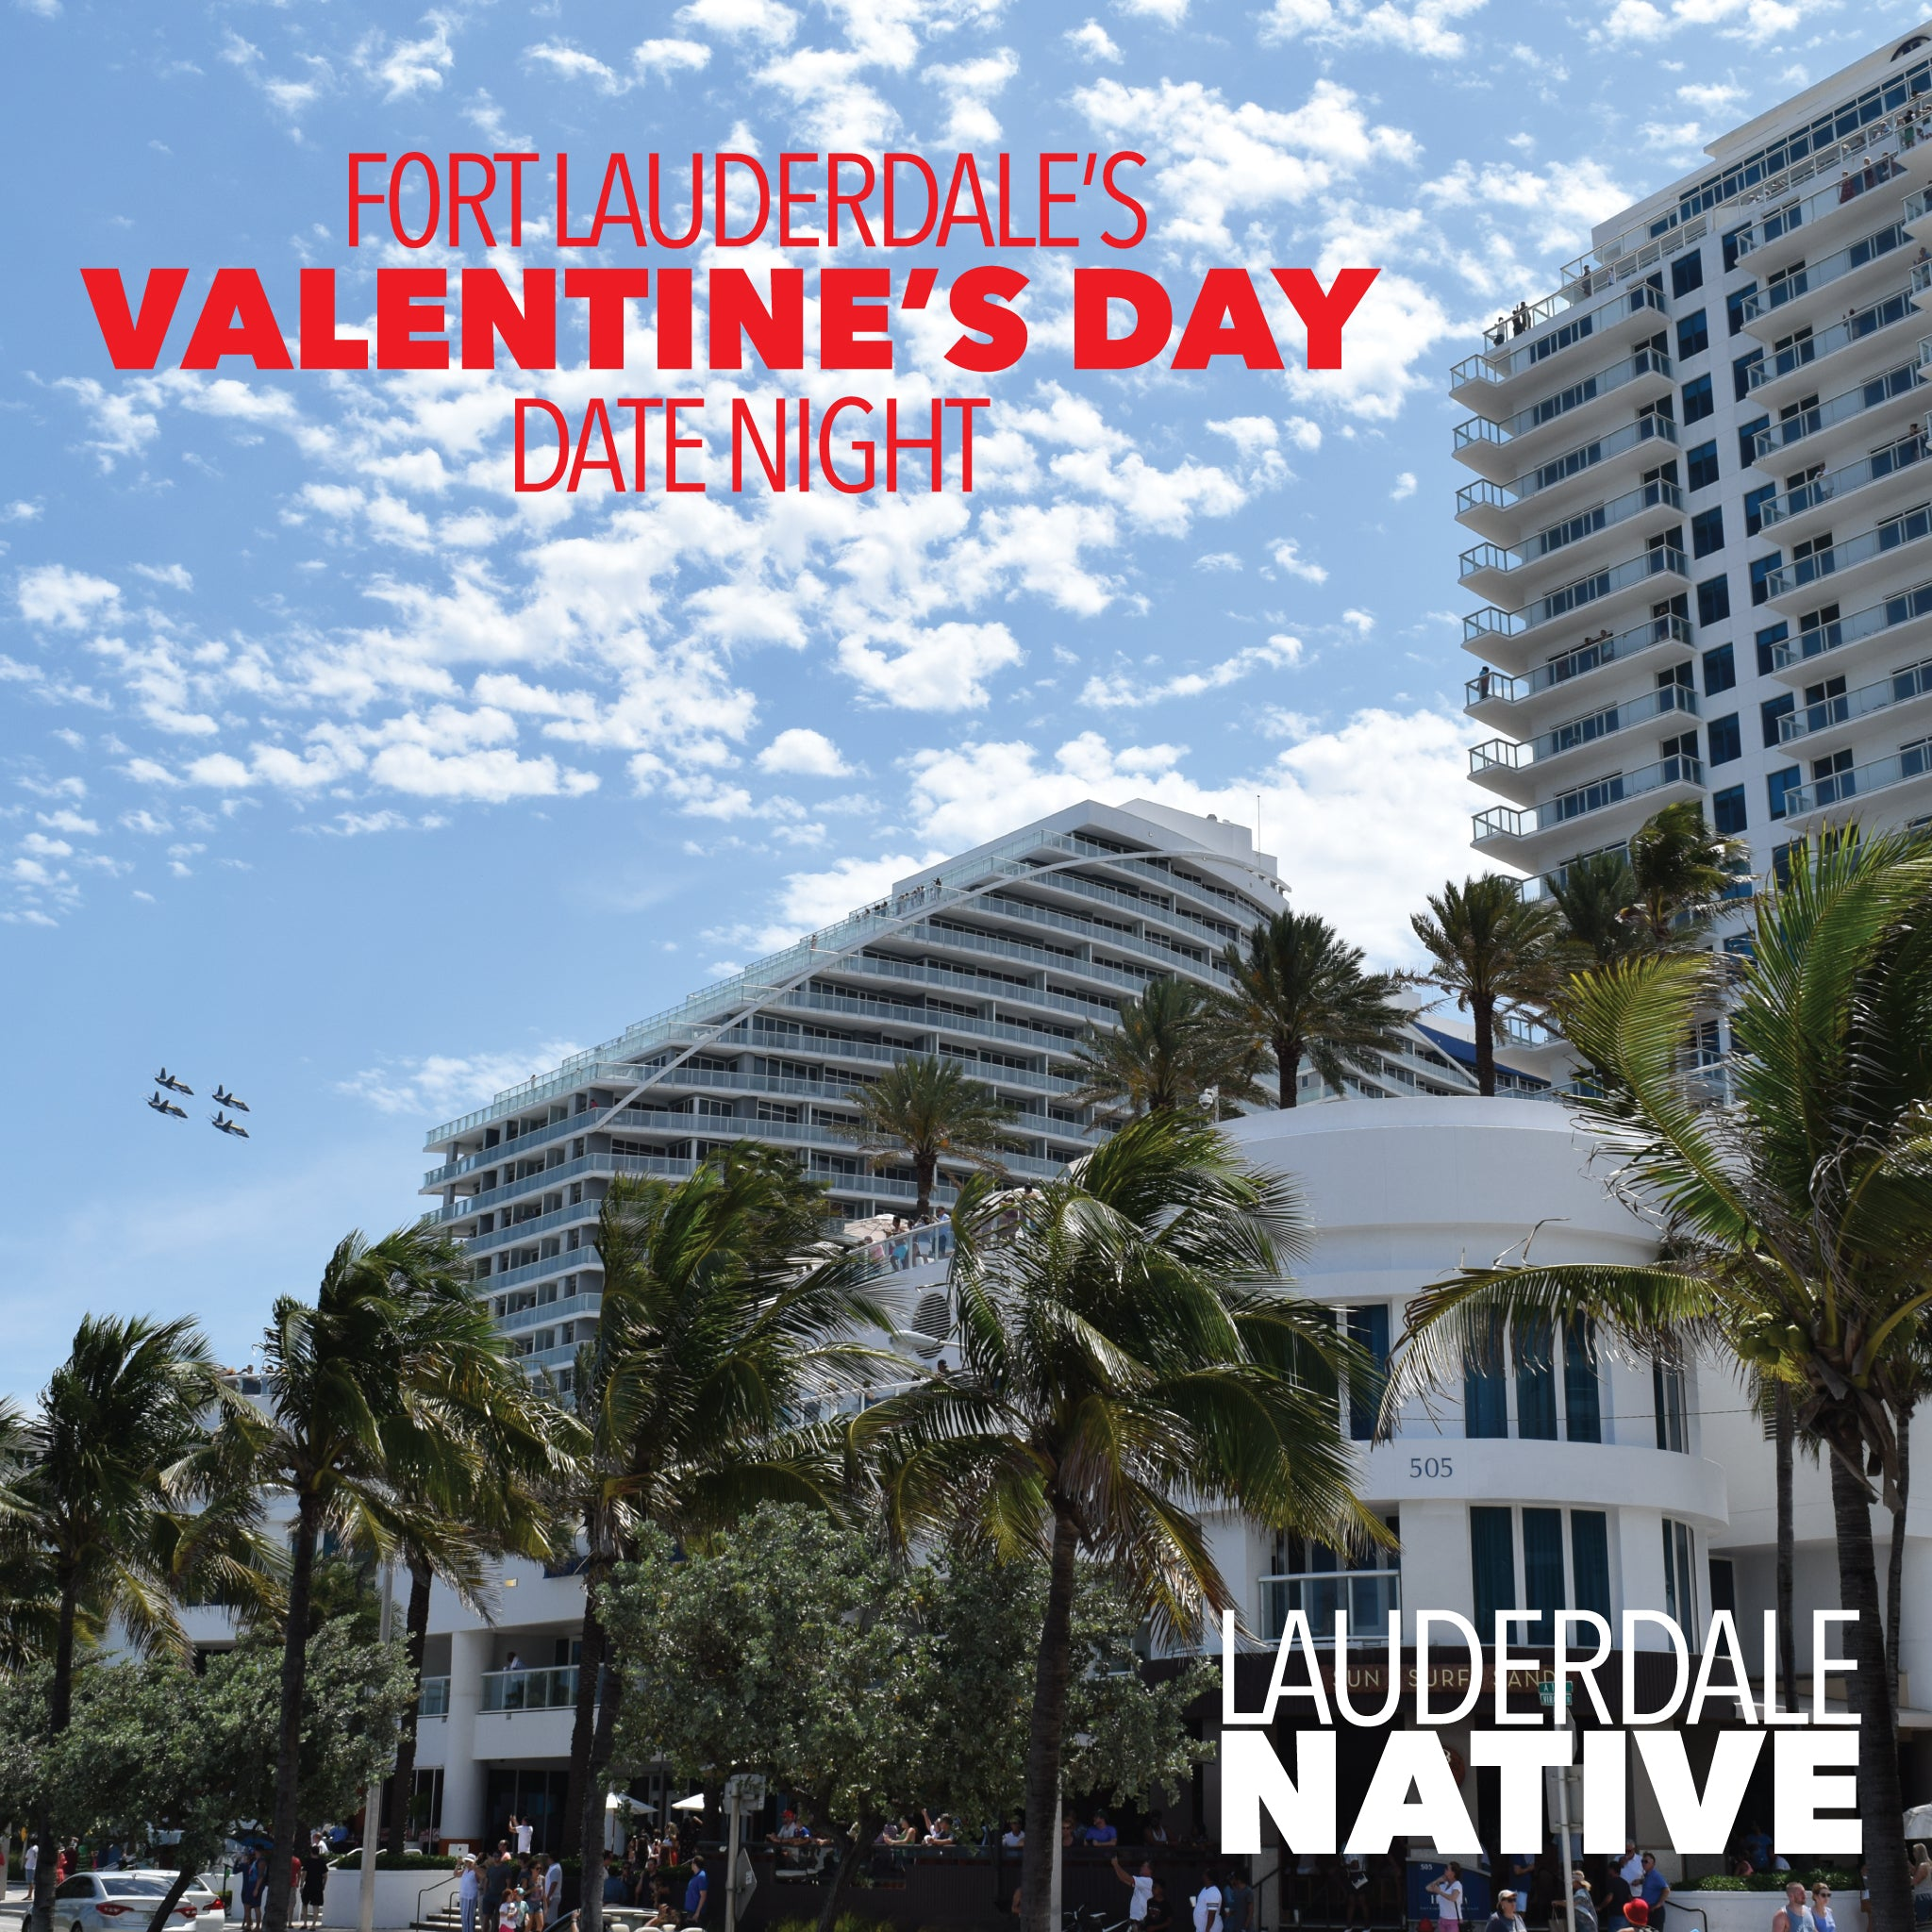 Top 10 Fort Lauderdale Restaurants and Events for Valentine's Day